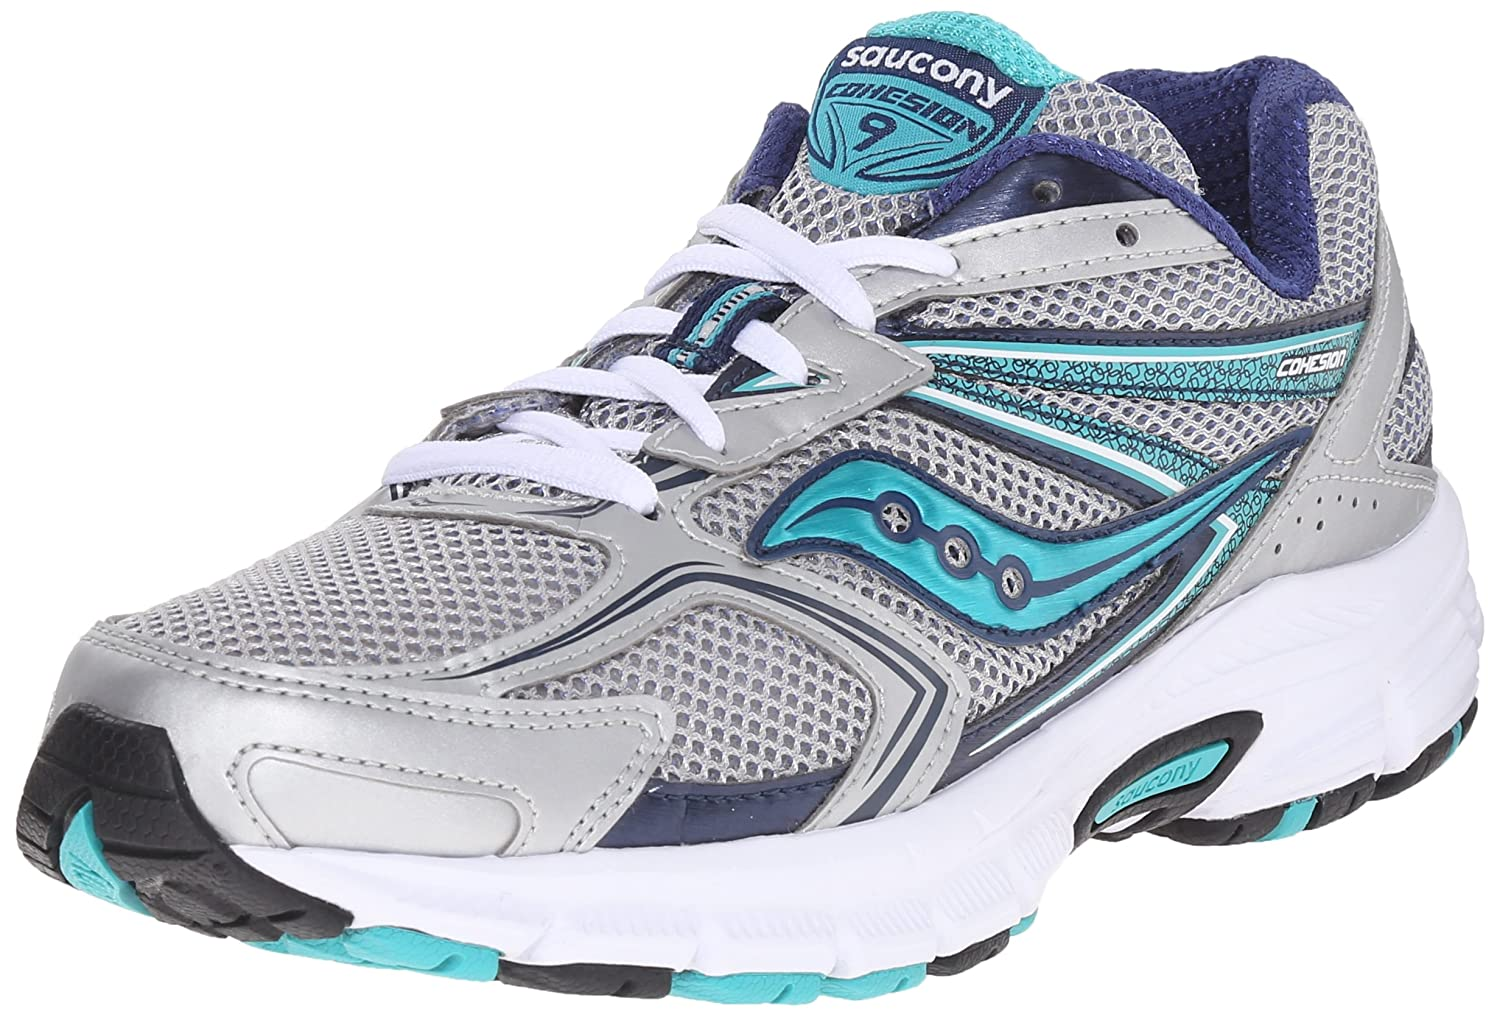 Saucony Women's Cohesion 9 Running Shoe B01018URFI 8 B(M) US|Silver/Navy/Teal